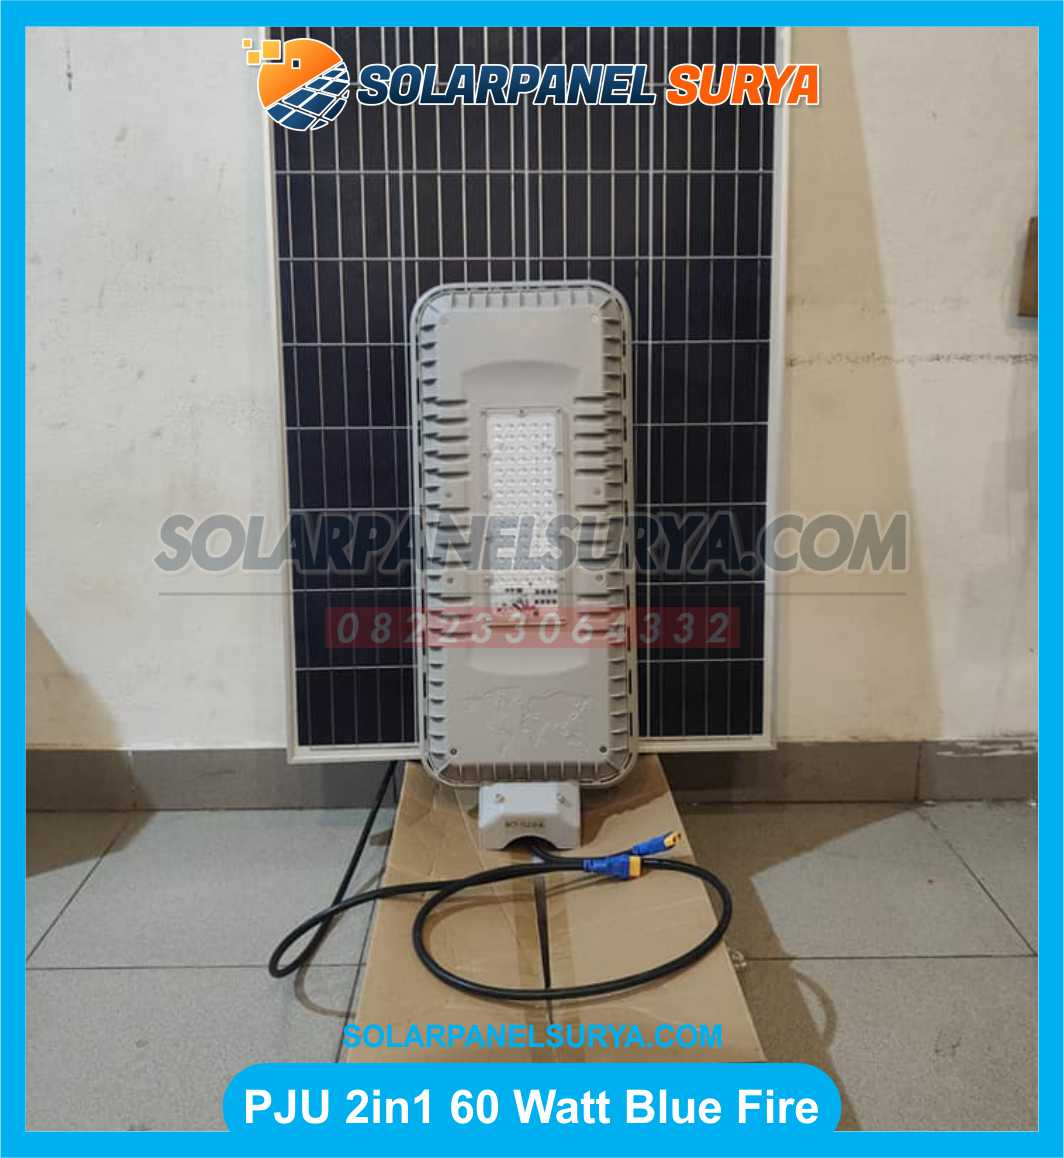 lampu pju solar cell two in one 60 watt blue fire light